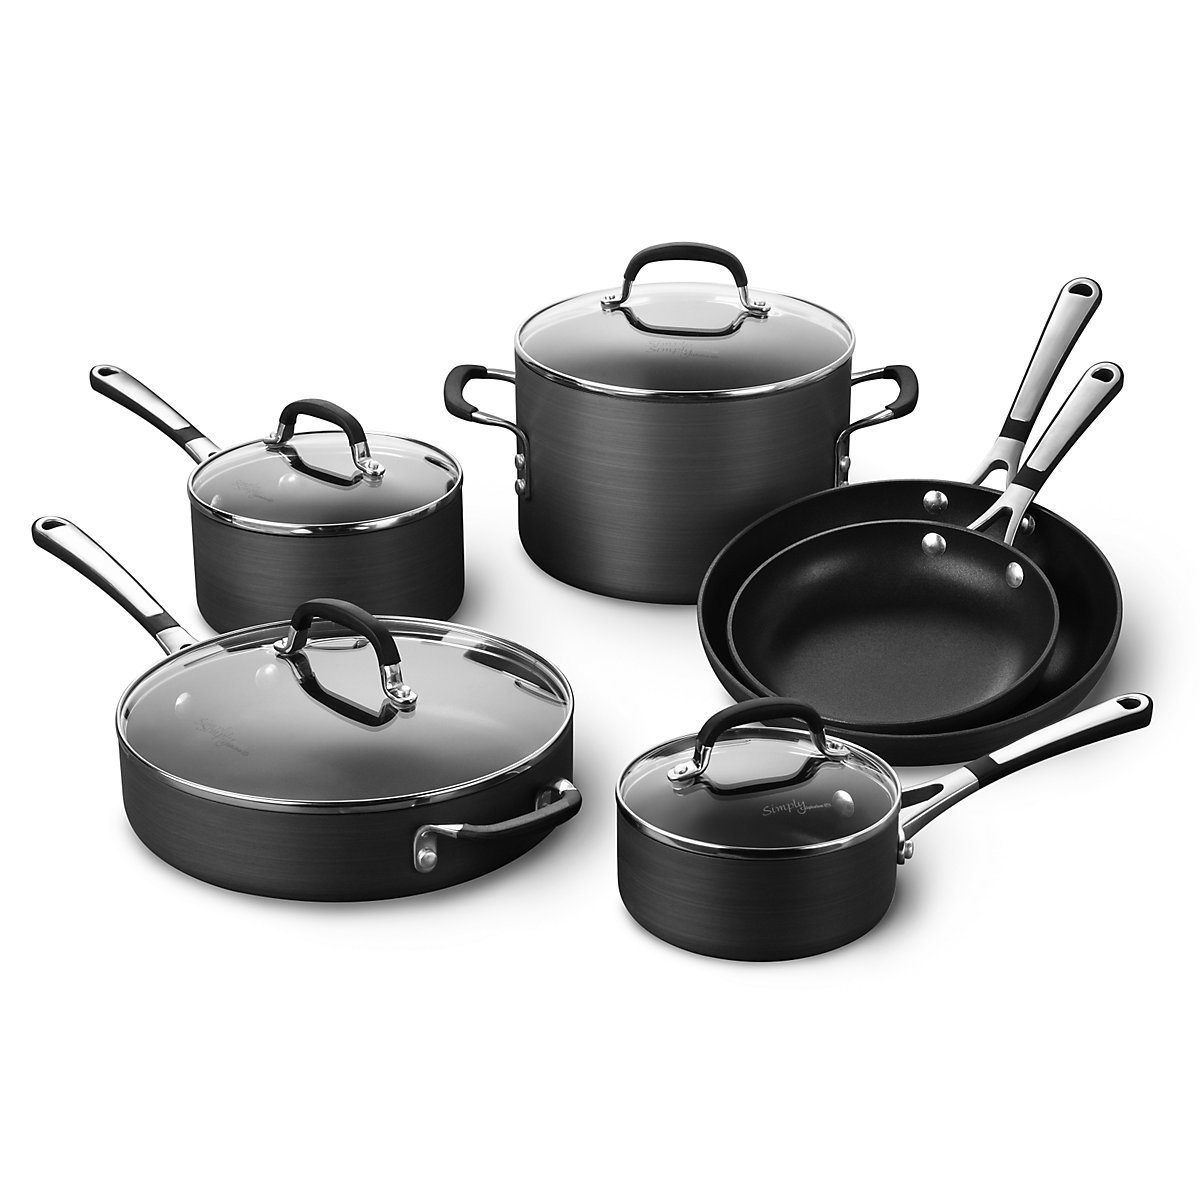 best non stick pan the best non stick cookware on the market for you in 2017 13178